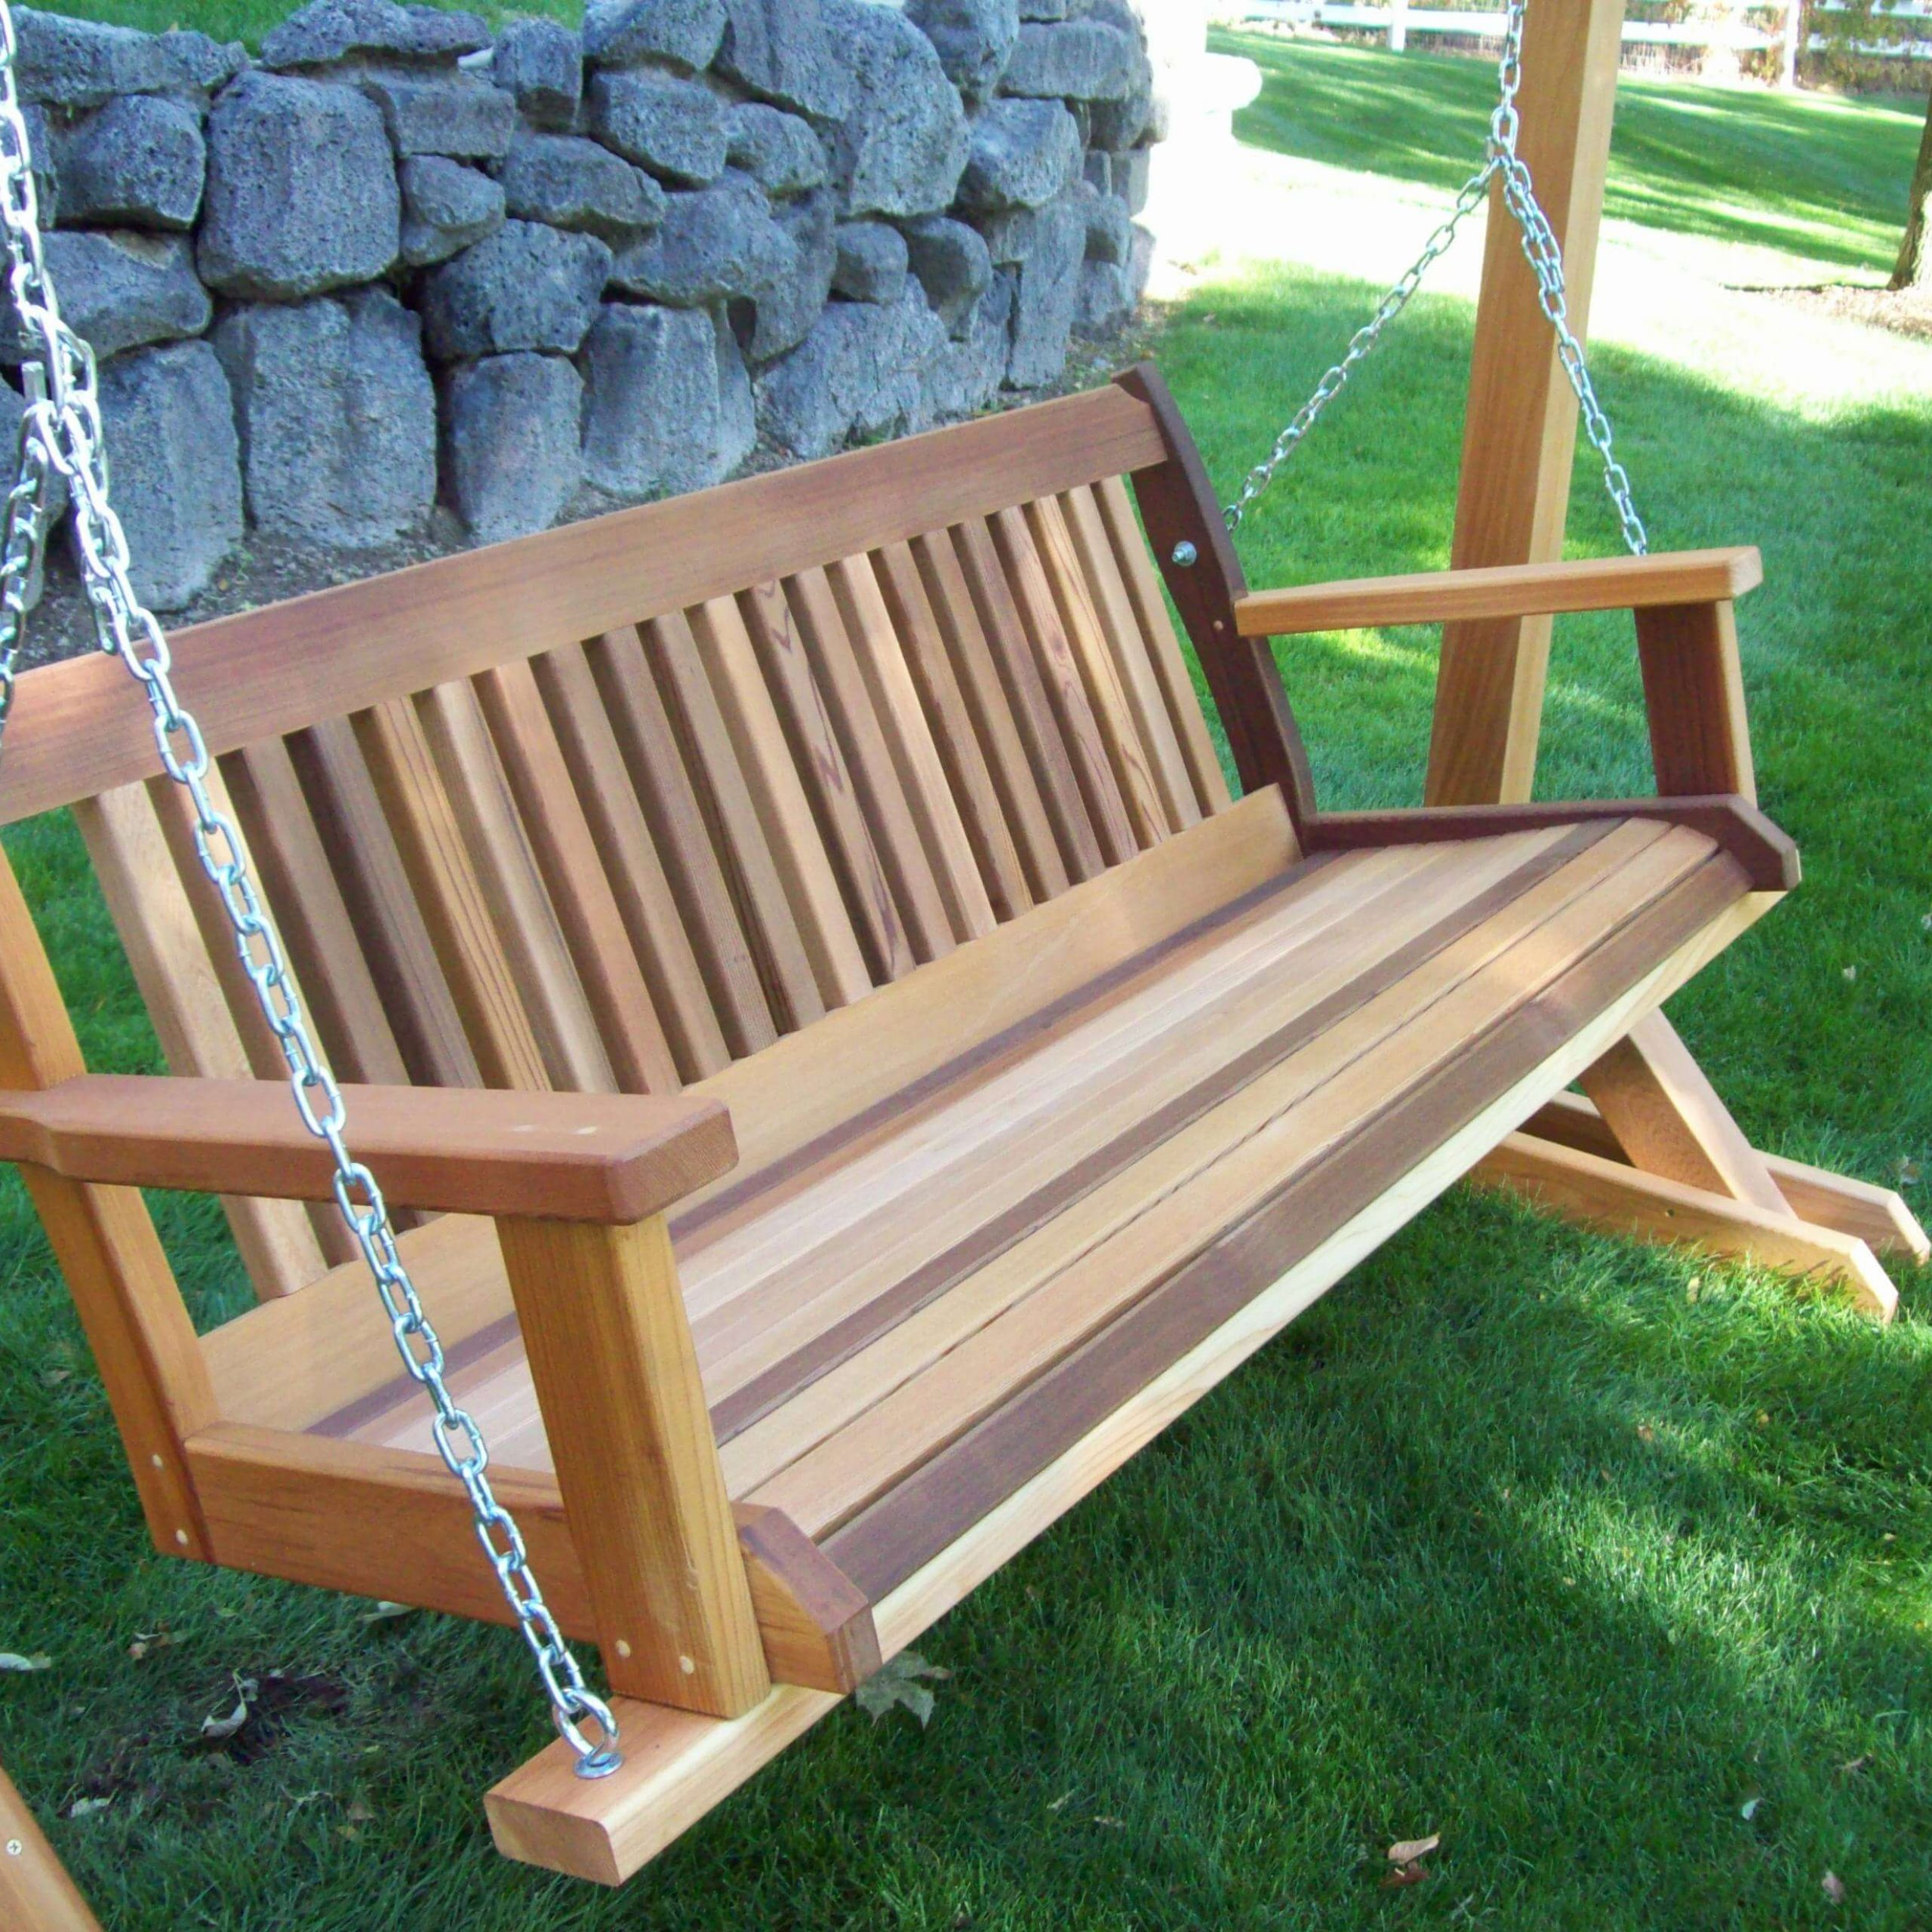 Best Porch Swing Reviews & Guide | The Hammock Expert Regarding 2 Person Natural Cedar Wood Outdoor Swings (View 8 of 25)